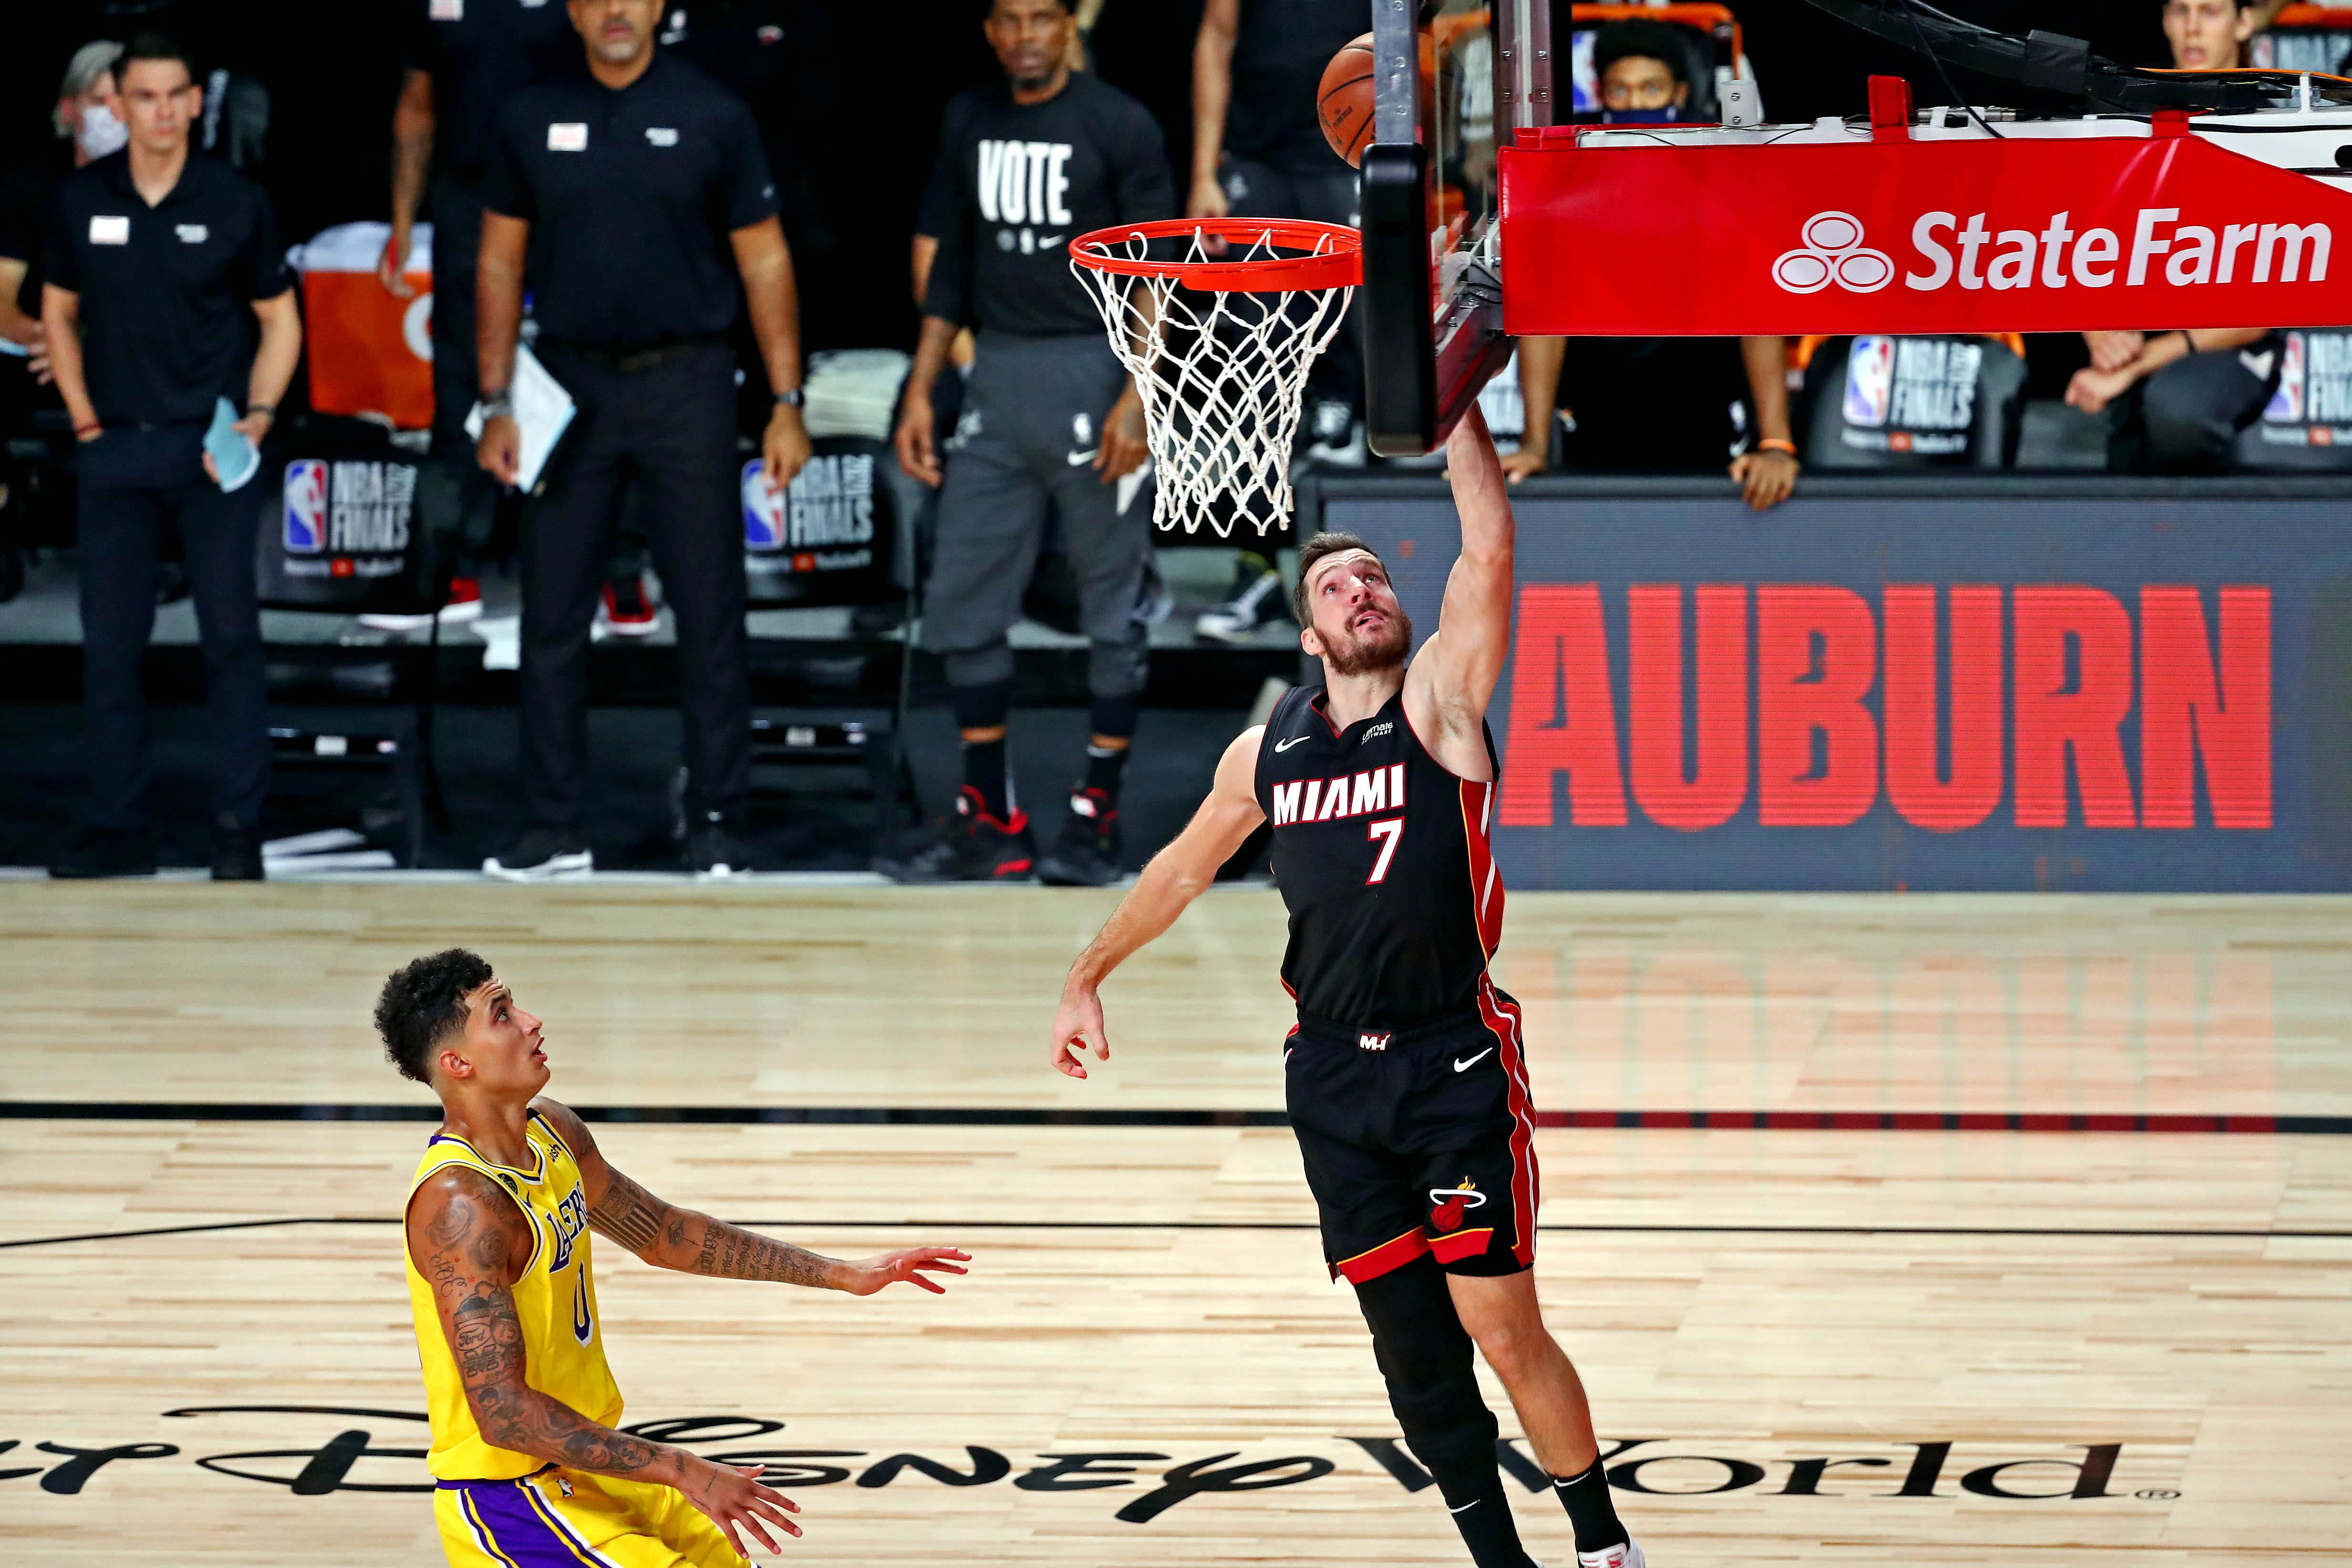 Heat hit with multiple injuries to starters in loss to Lakers in Game 1 of NBA Finals